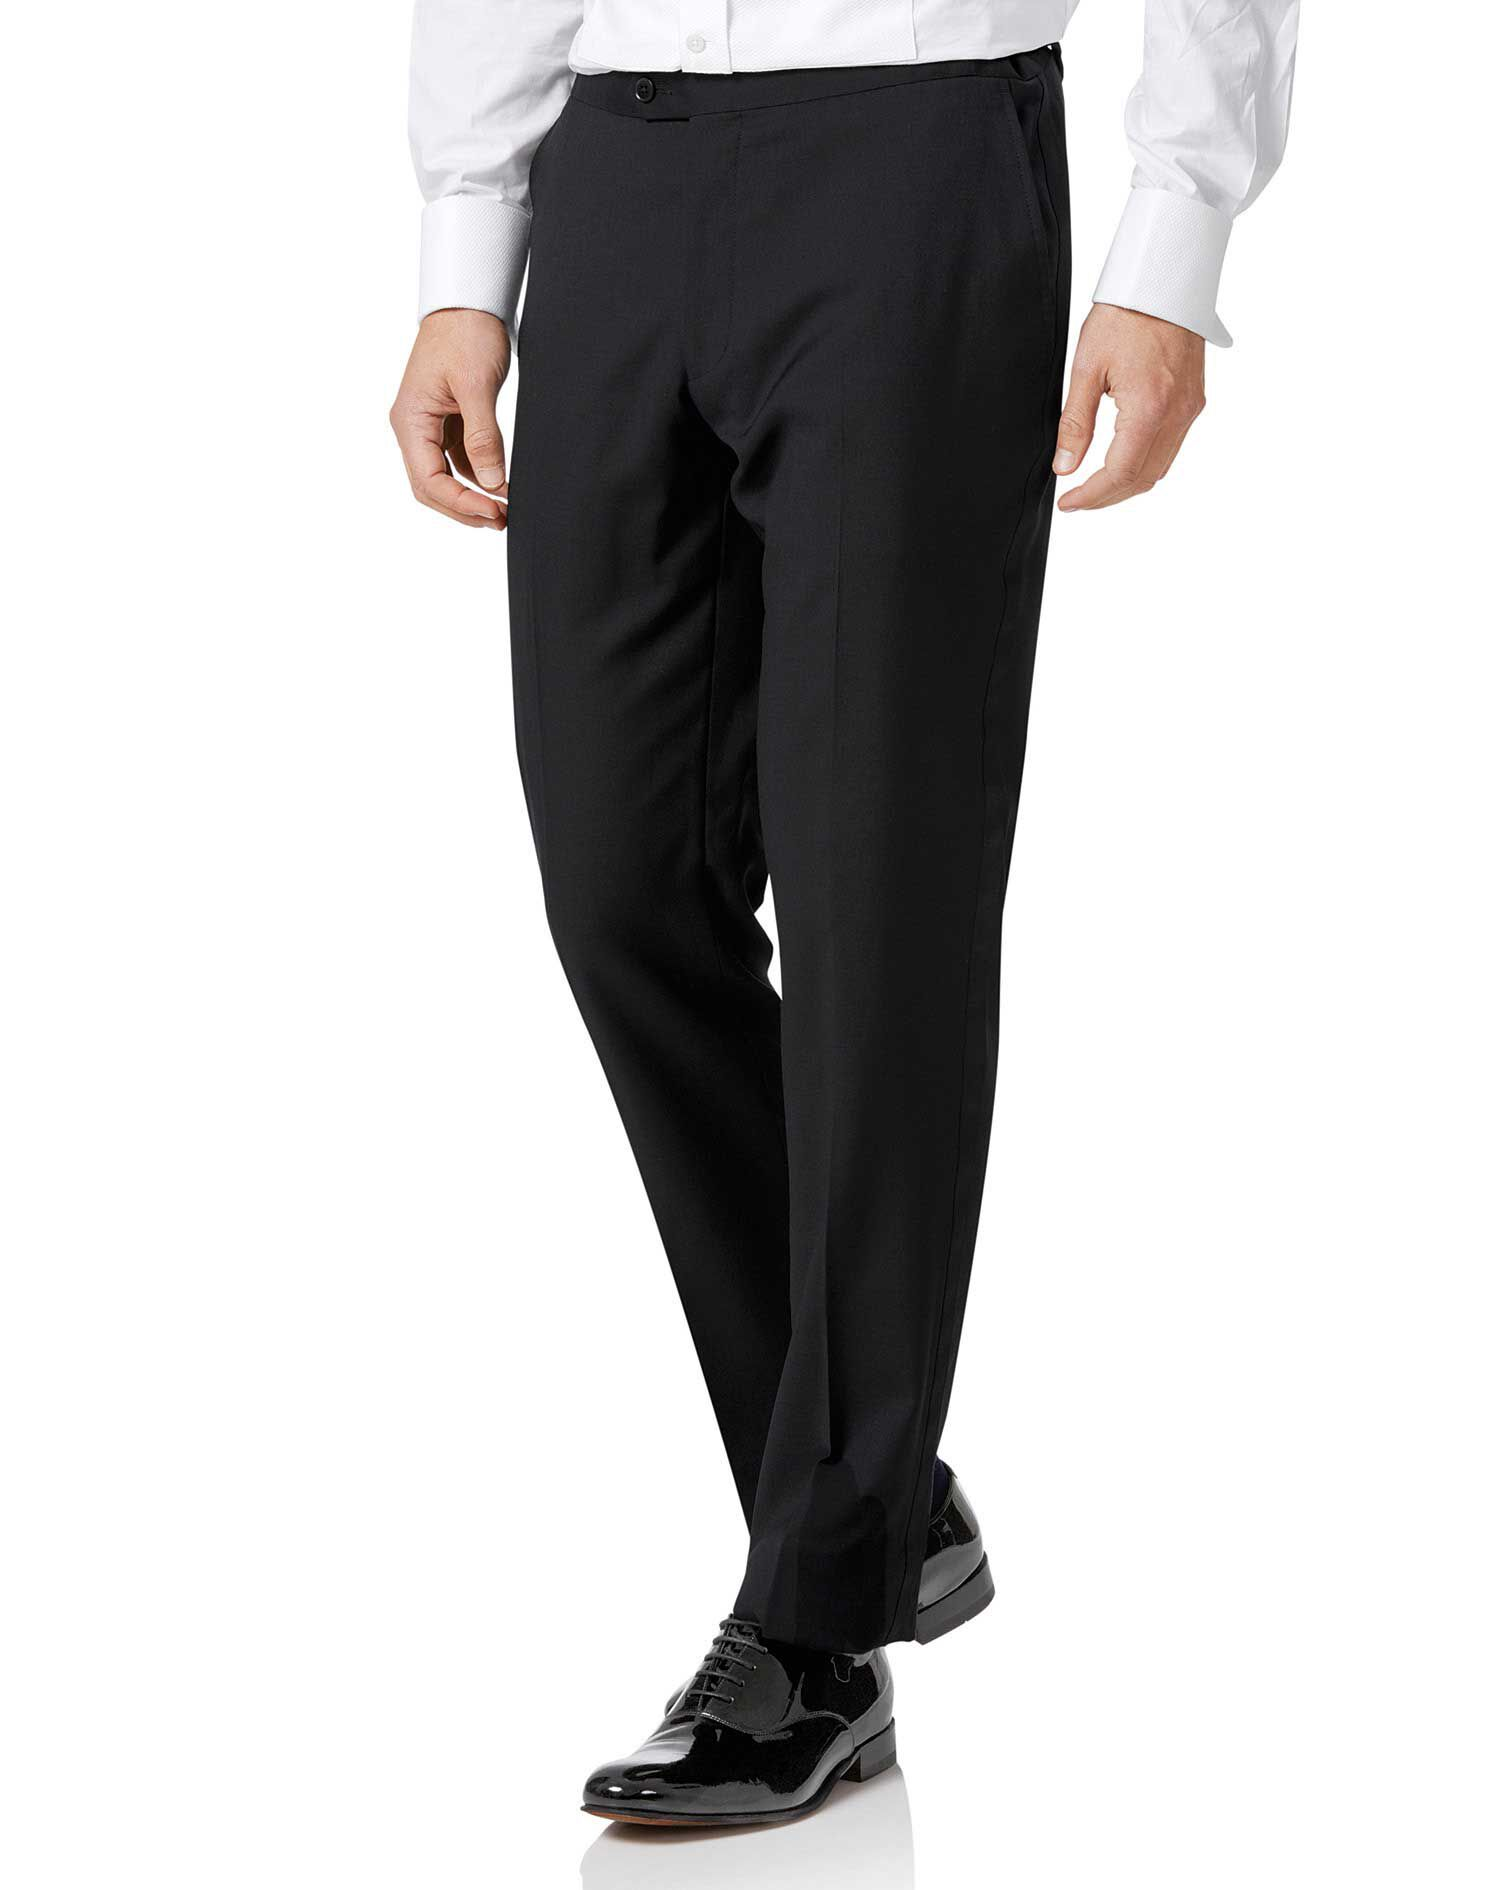 Black Slim Fit Tuxedo Trousers Size W32 L30 by Charles Tyrwhitt